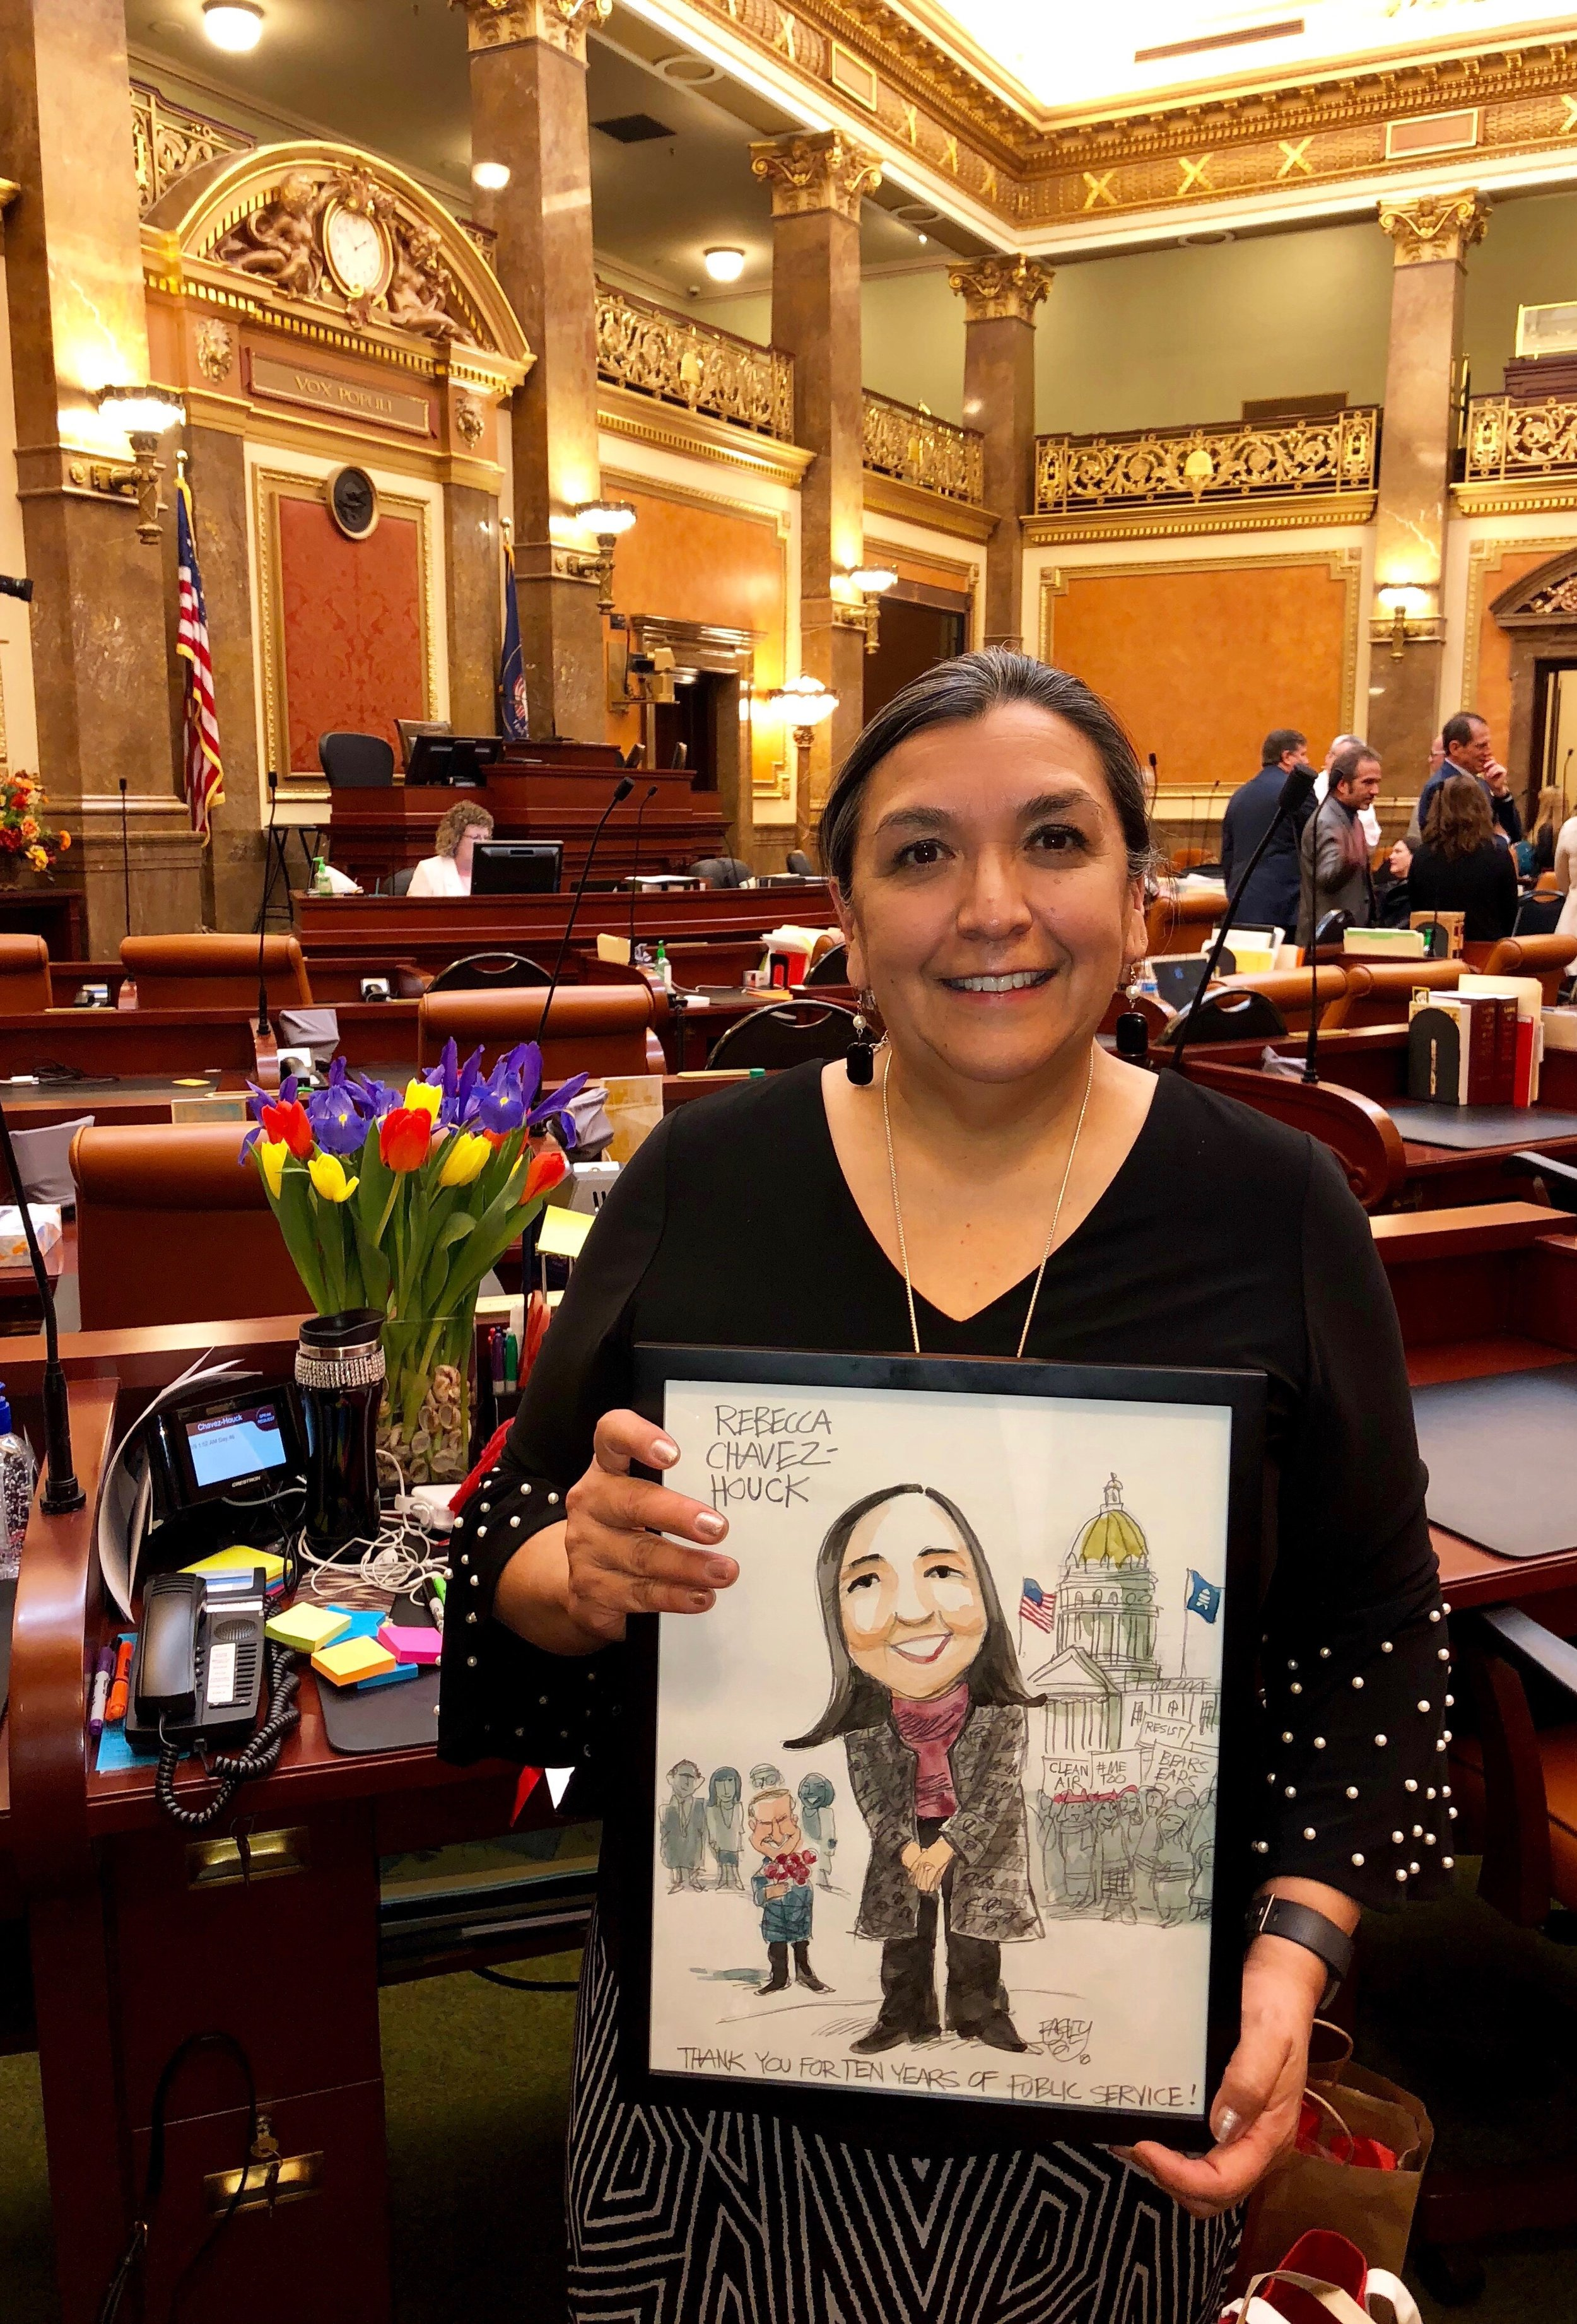 Legislator.Non-Profit Executive. Community Advocate.Journalist - In a life journey that began on a produce farm in the outskirts of Salt Lake County, Rebecca doesn't forget her roots, nor the opportunities that set her on her path to public service.